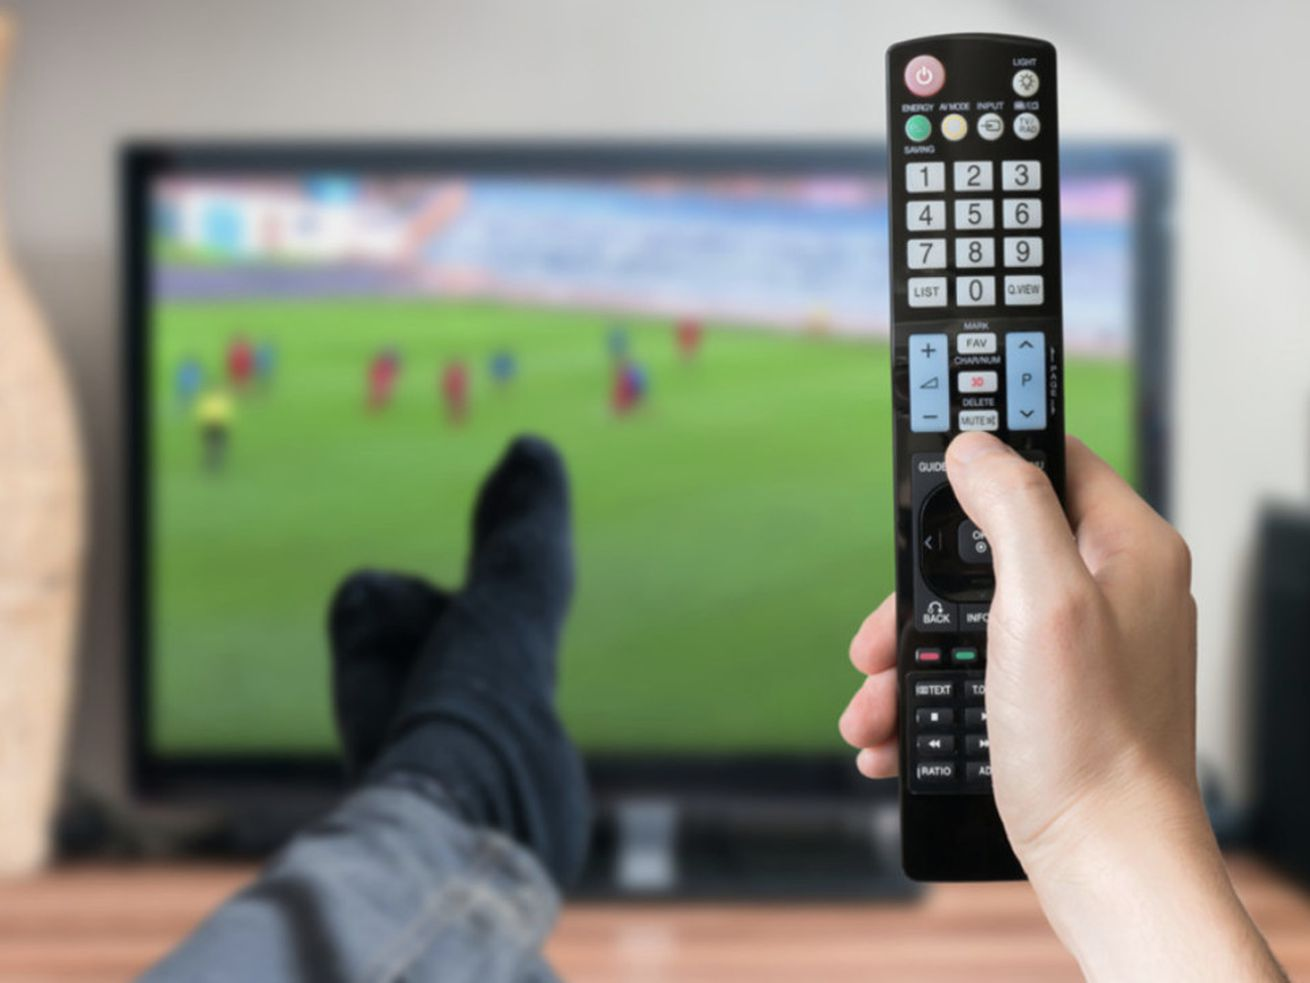 Sports on the air: Here's what games are on TV and radio for the week of July 5-11